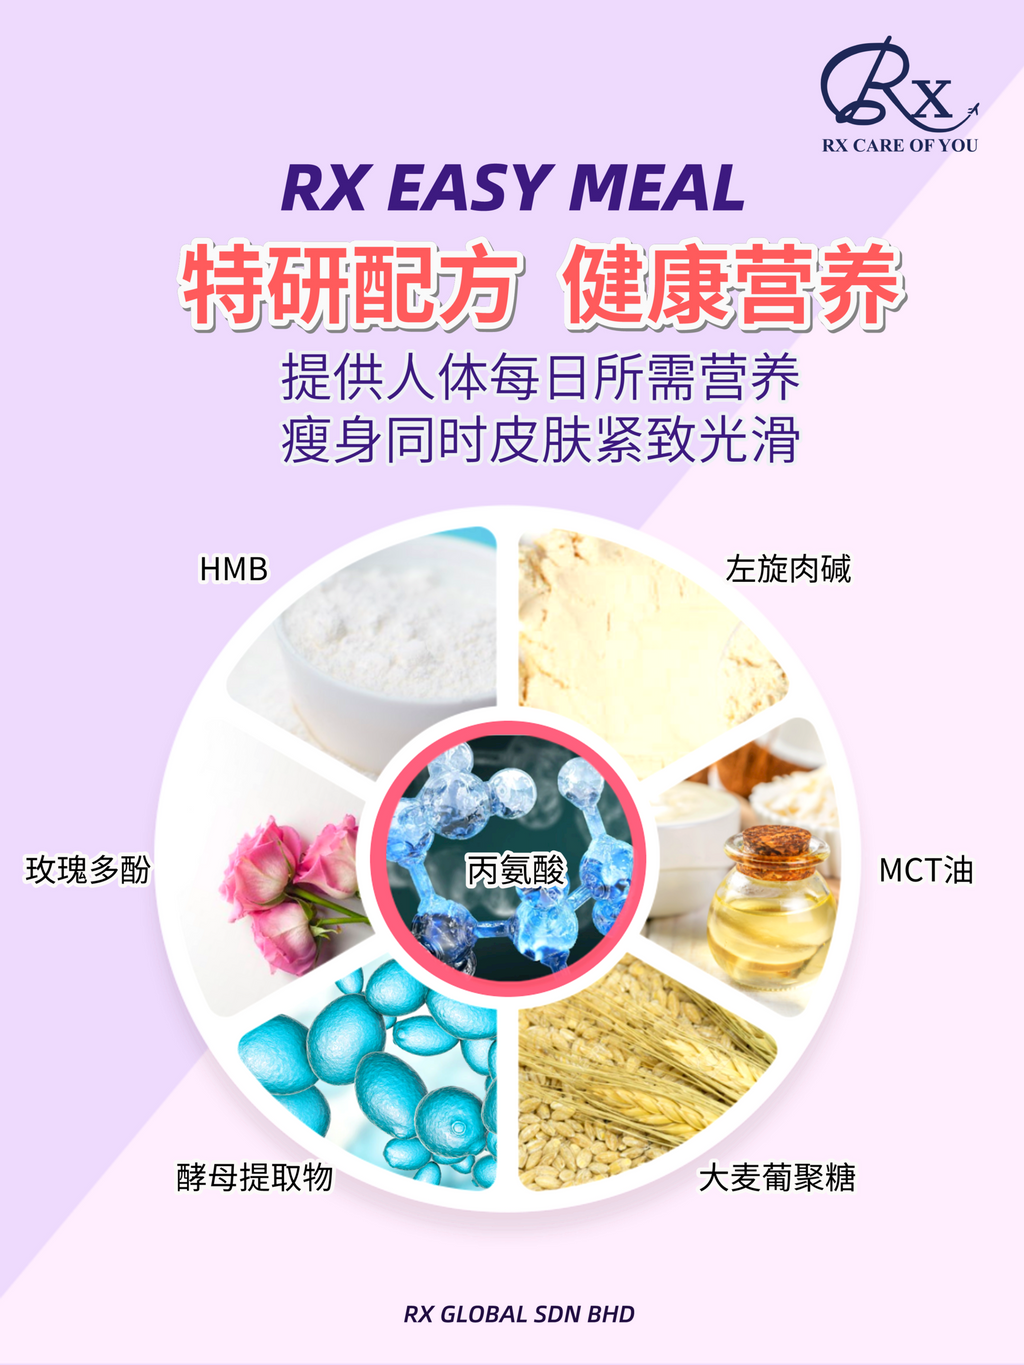 rx-easymeal5.png